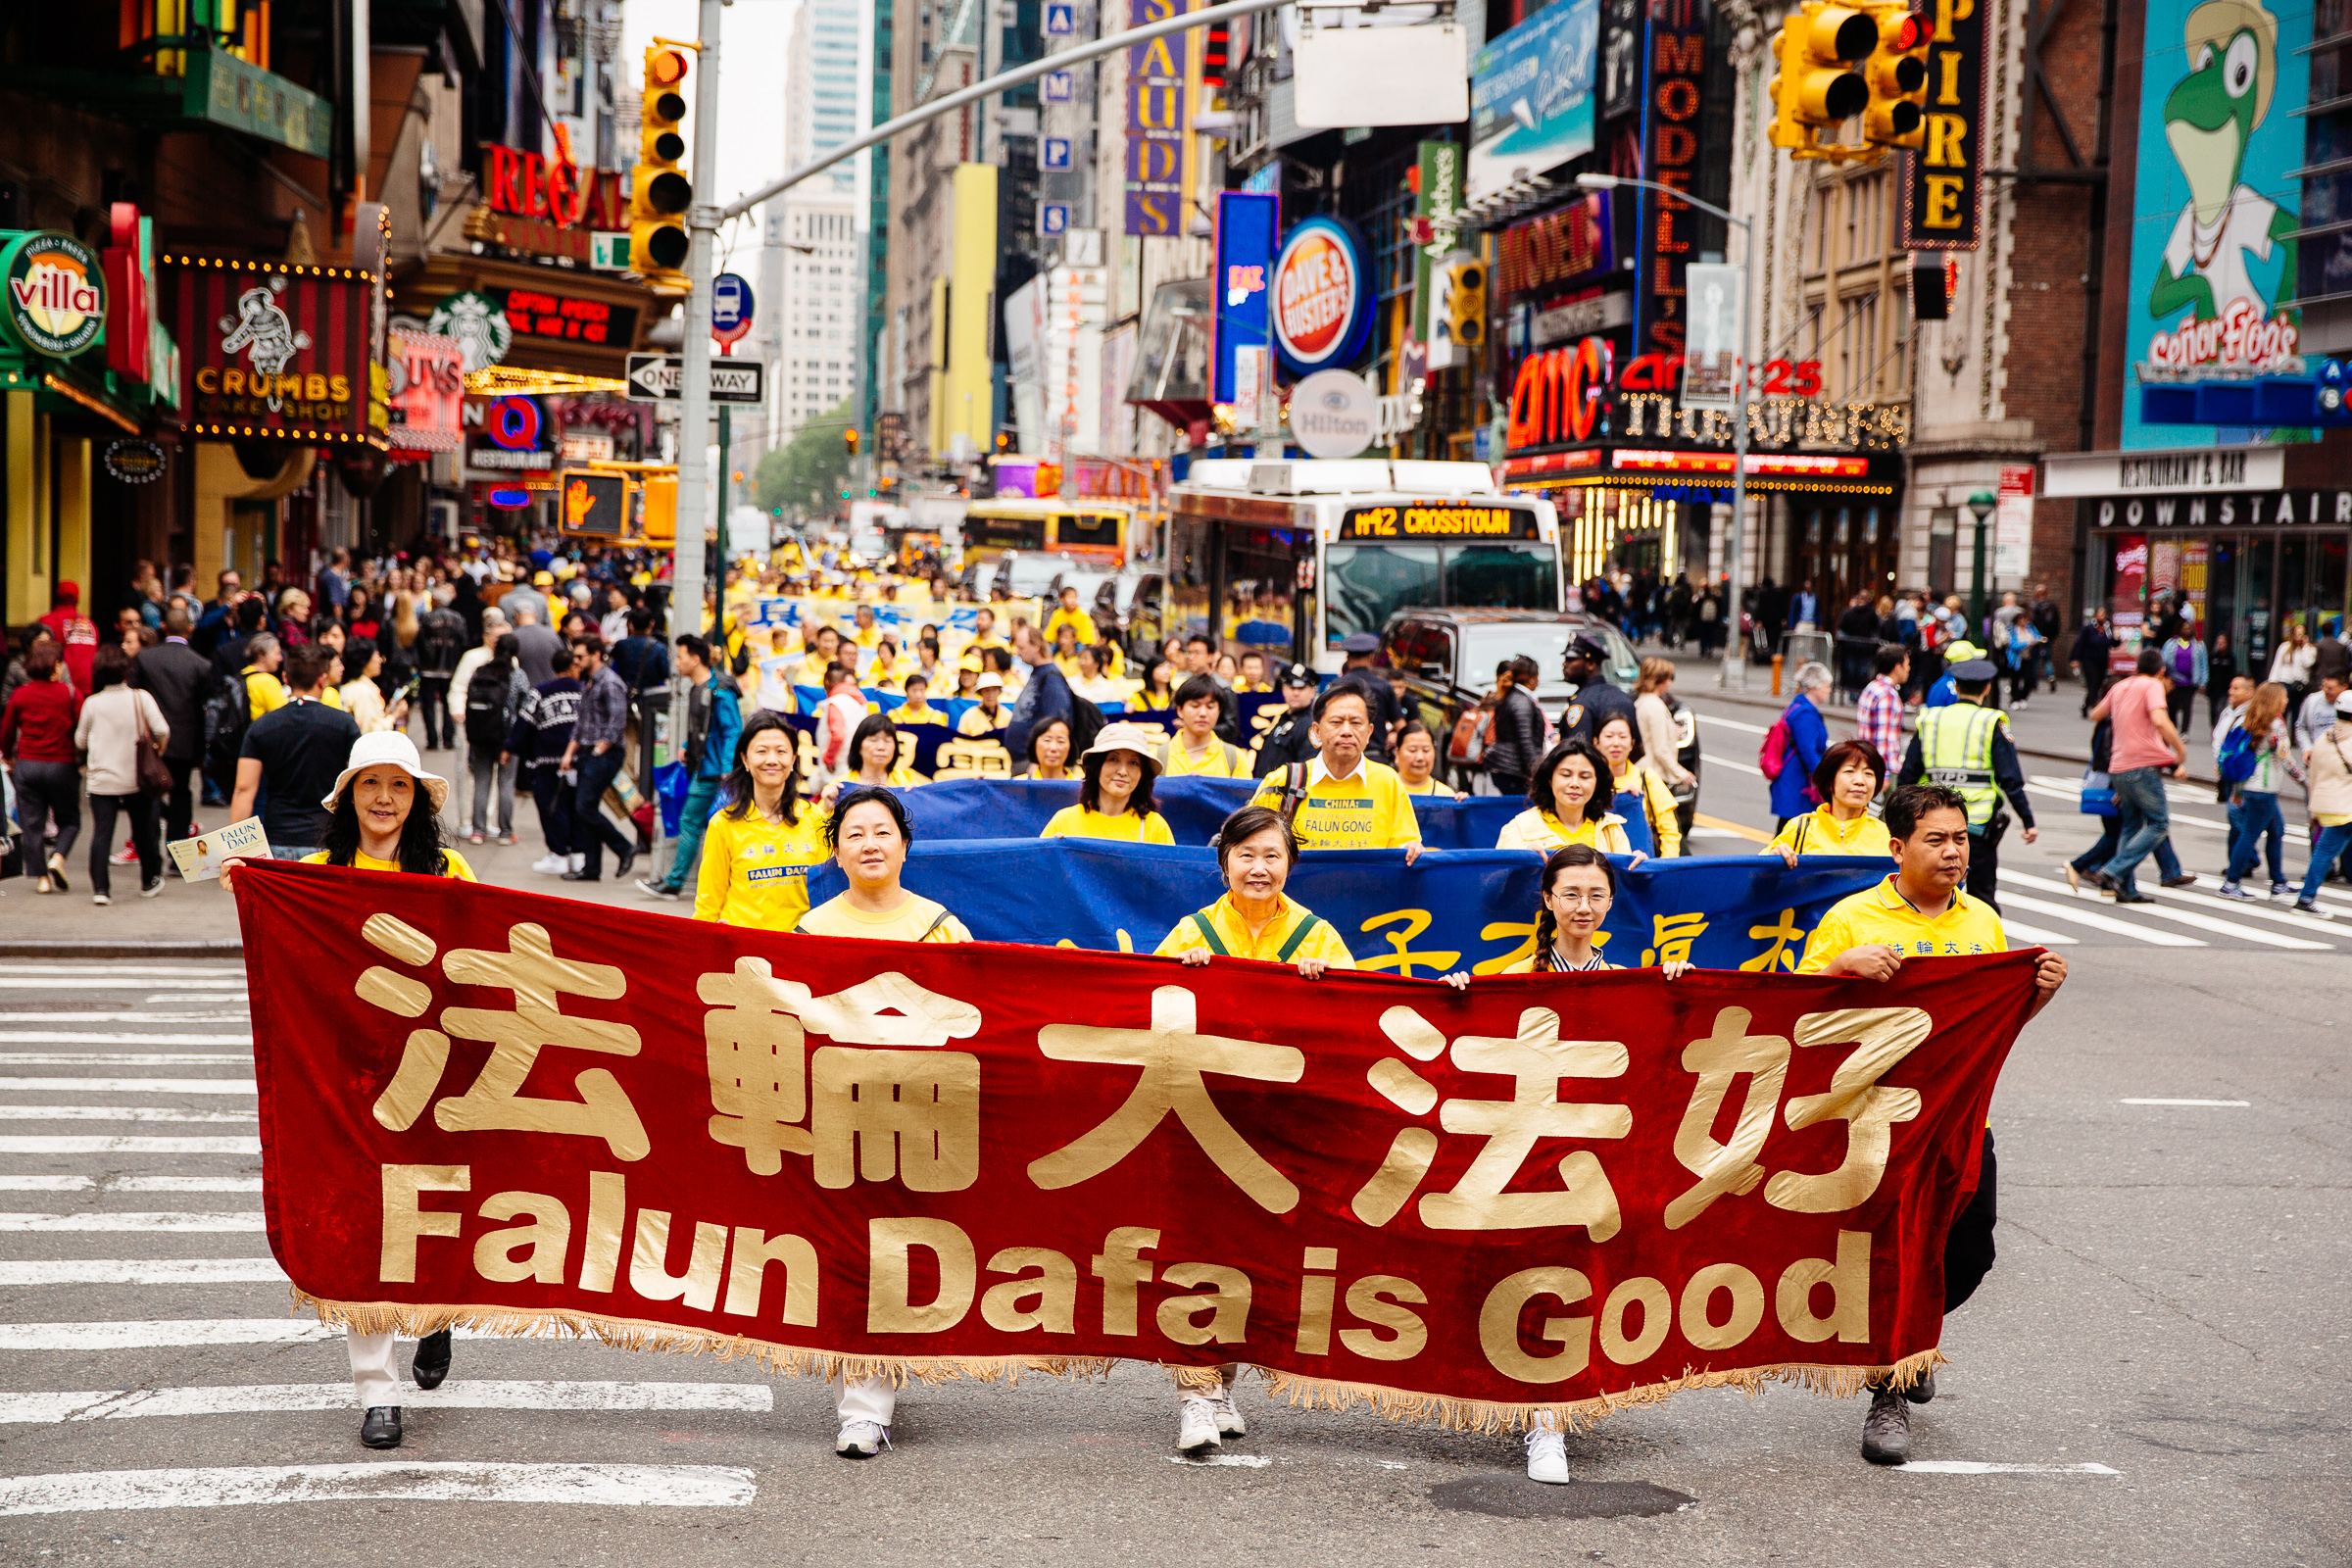 Around 10,000 Falun Gong practitioners march in the World Falun Dafa parade in New York on May 13, 2016. (Edward Dye/Epoch Times)